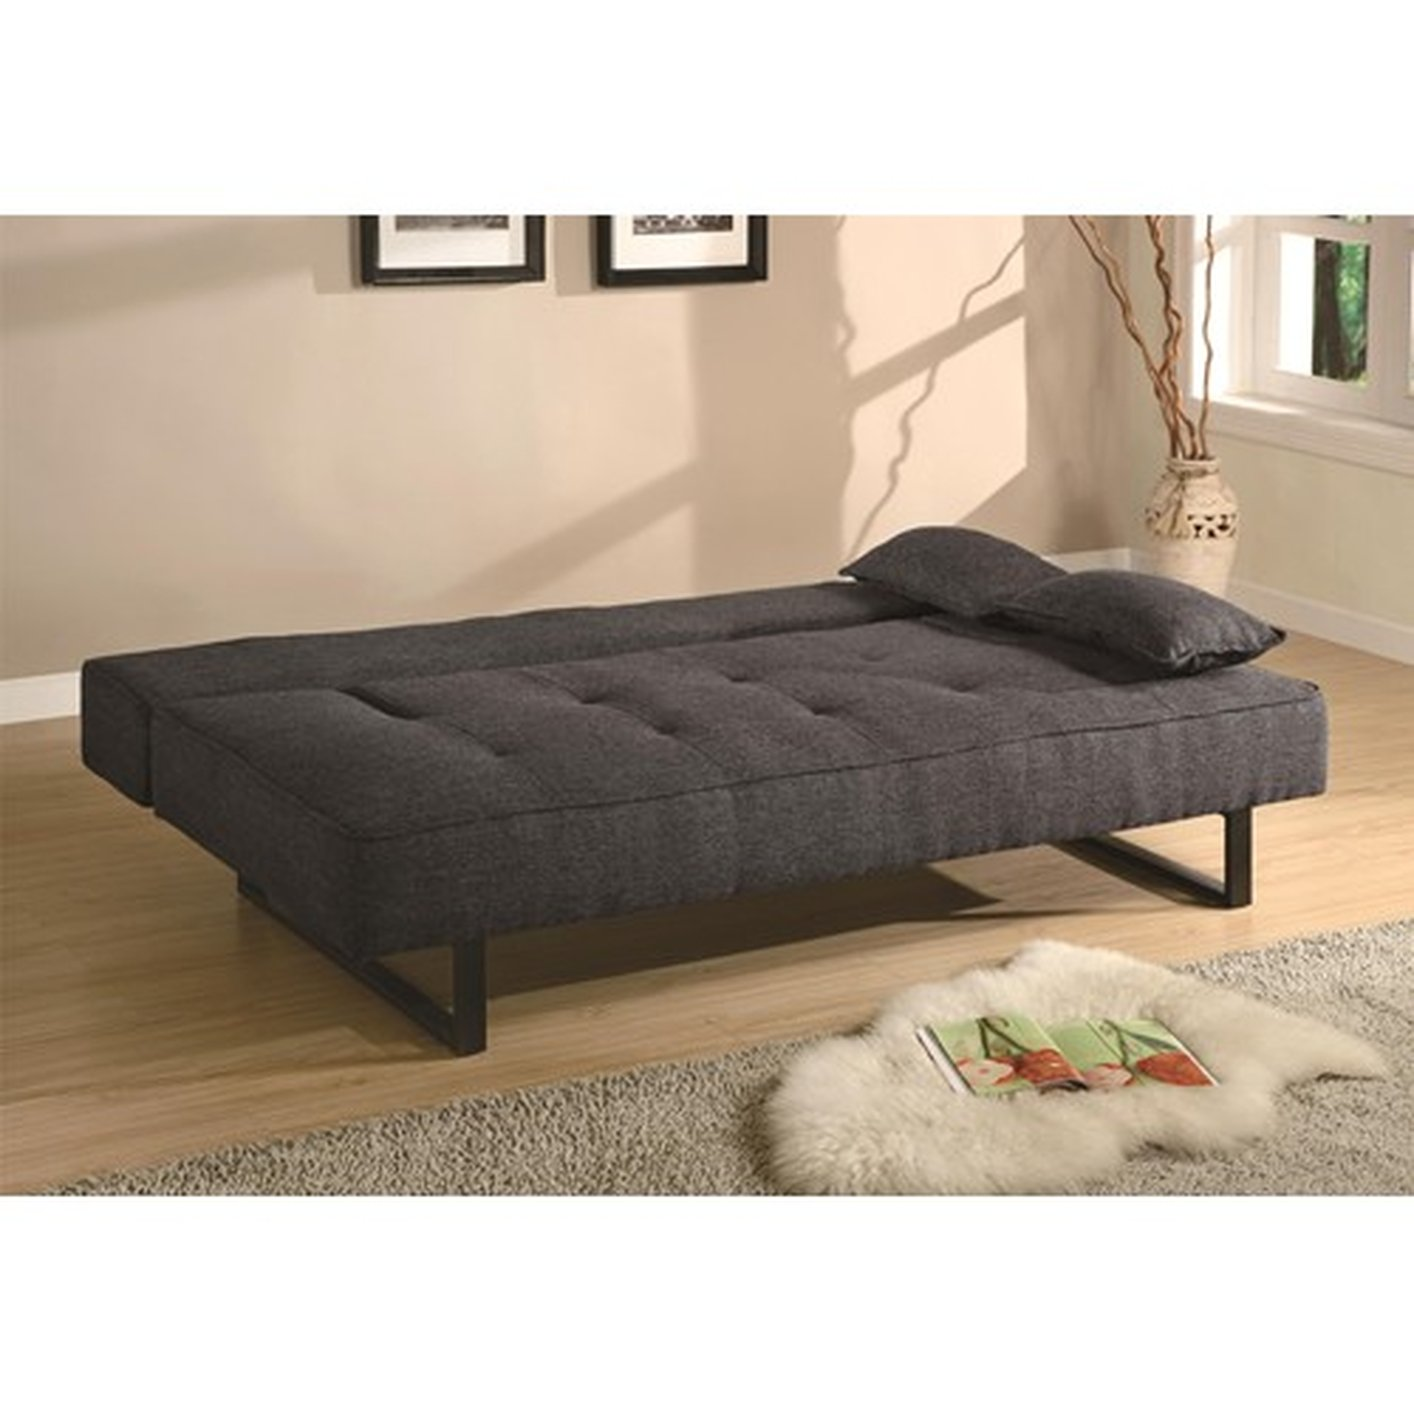 Coaster 300137 Grey Full Size Fabric Sofa Bed Steal A